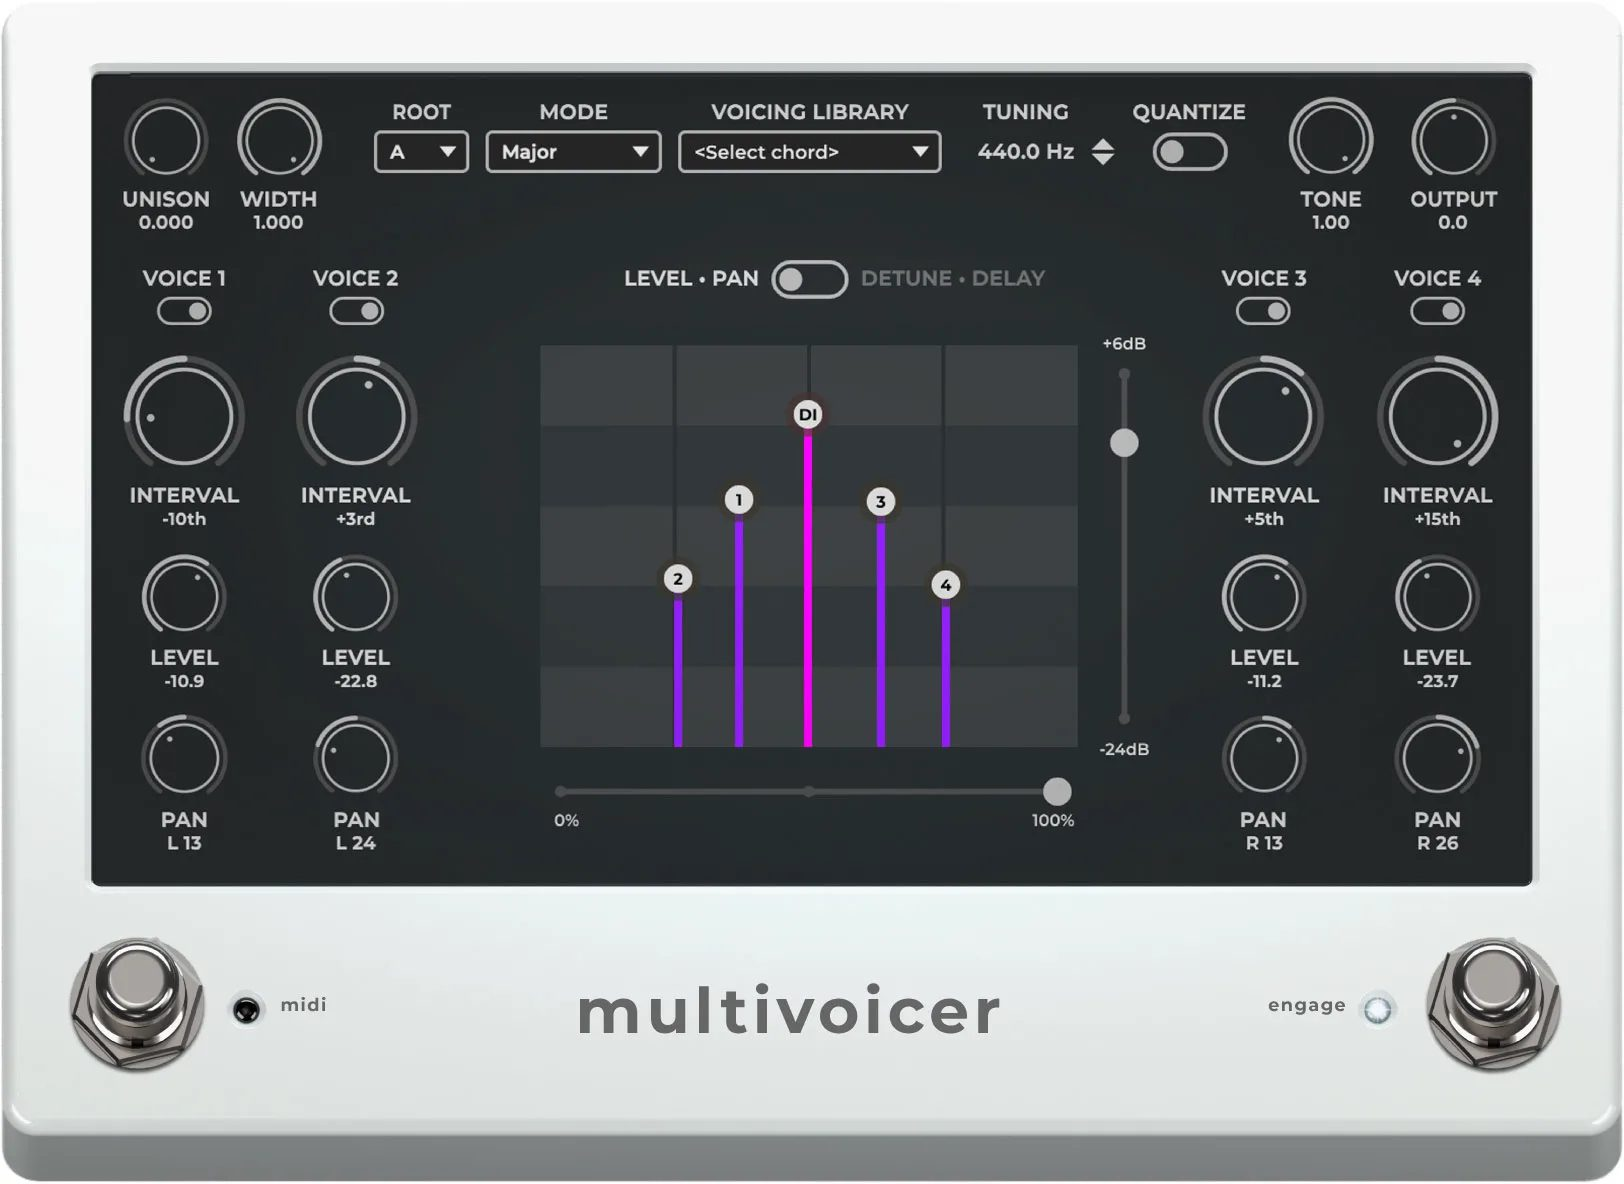 Multivoicer algorithm allows you to add 4 pitch shifted voices on top of your signa